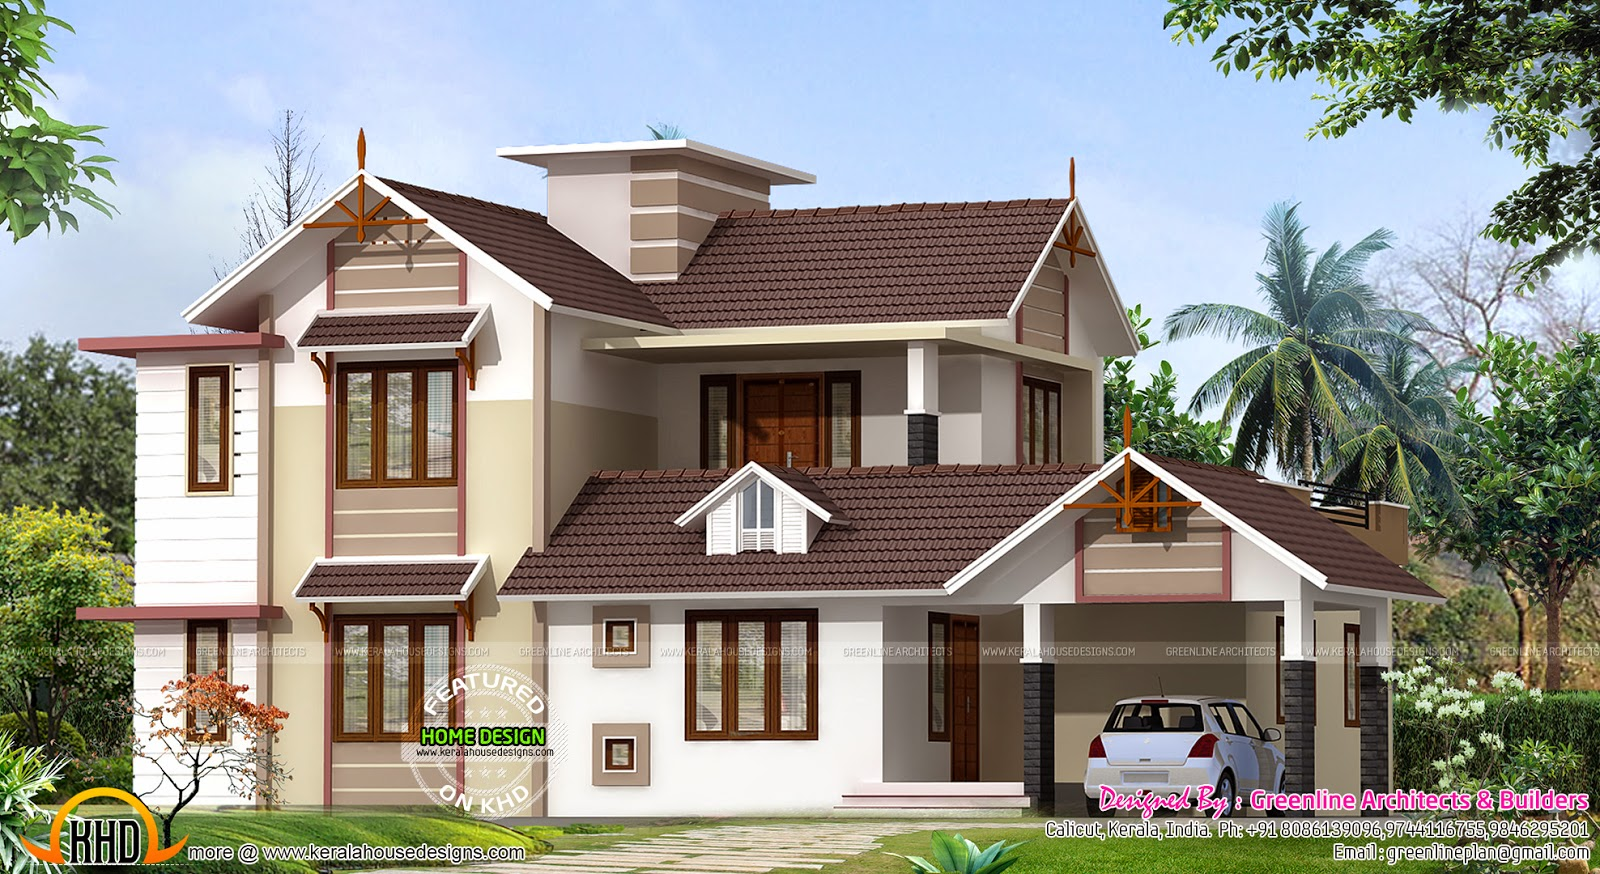 2400 sq ft new house design kerala home design and floor for New house plan design